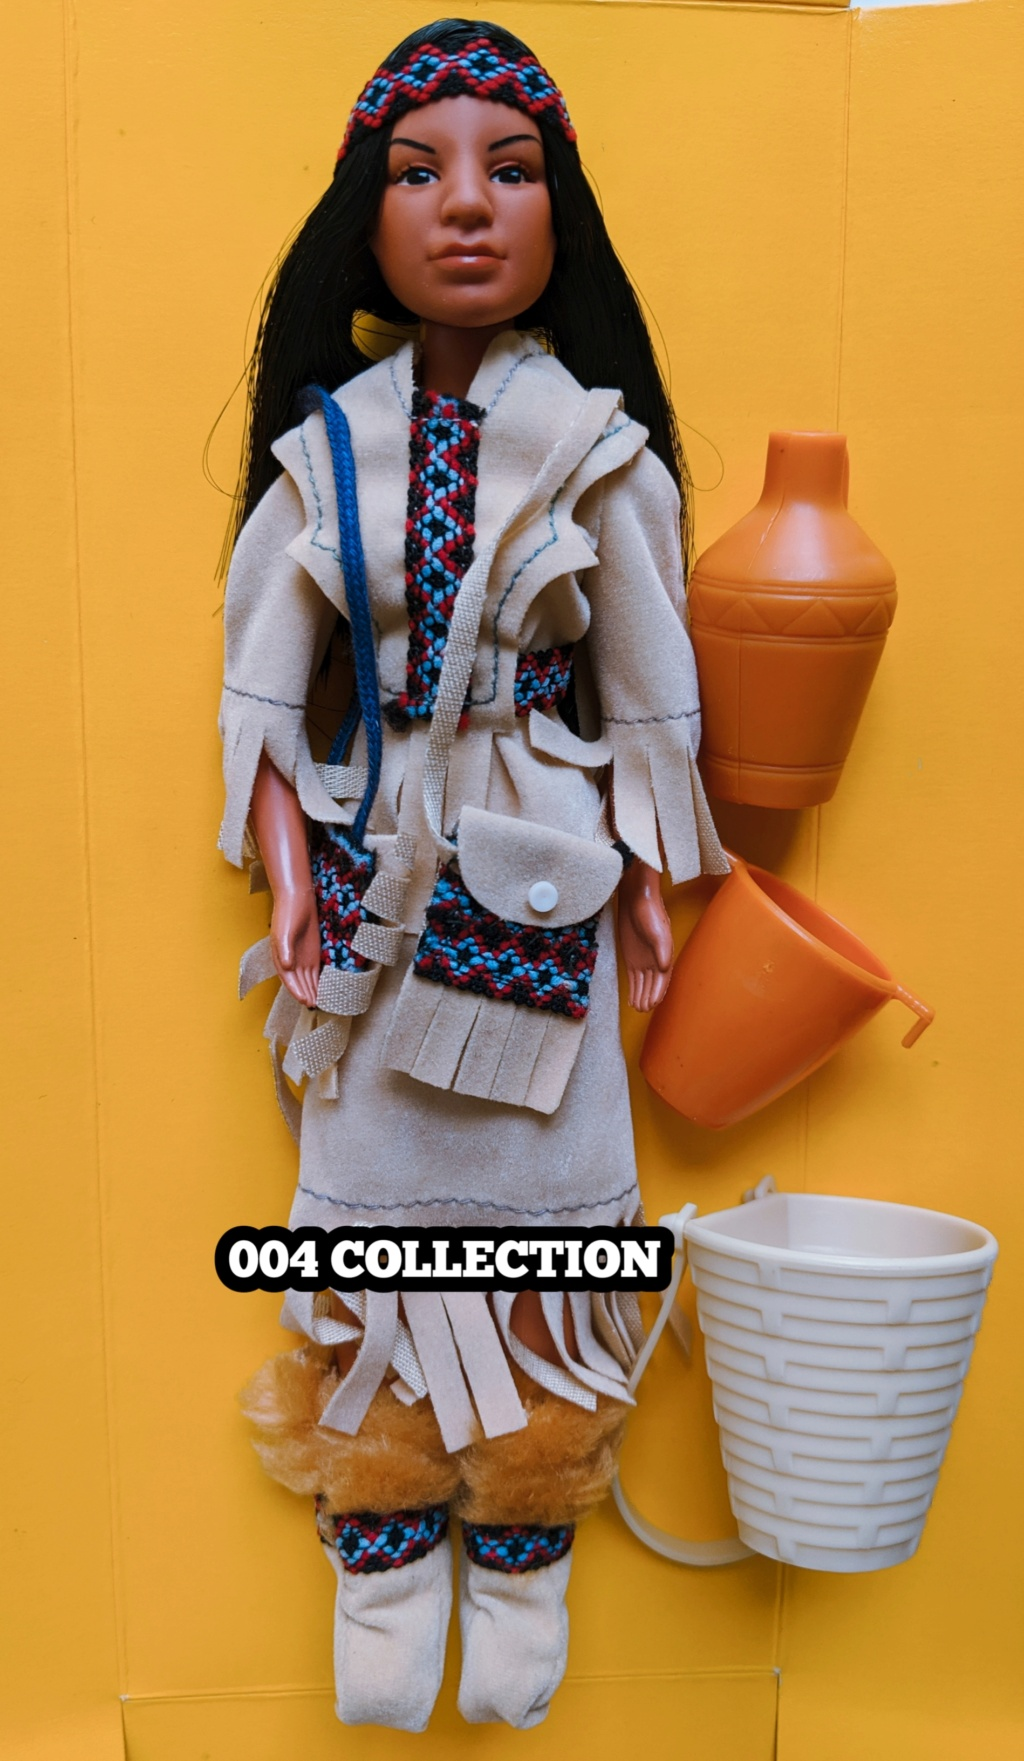 004 COLLECTION 20210934